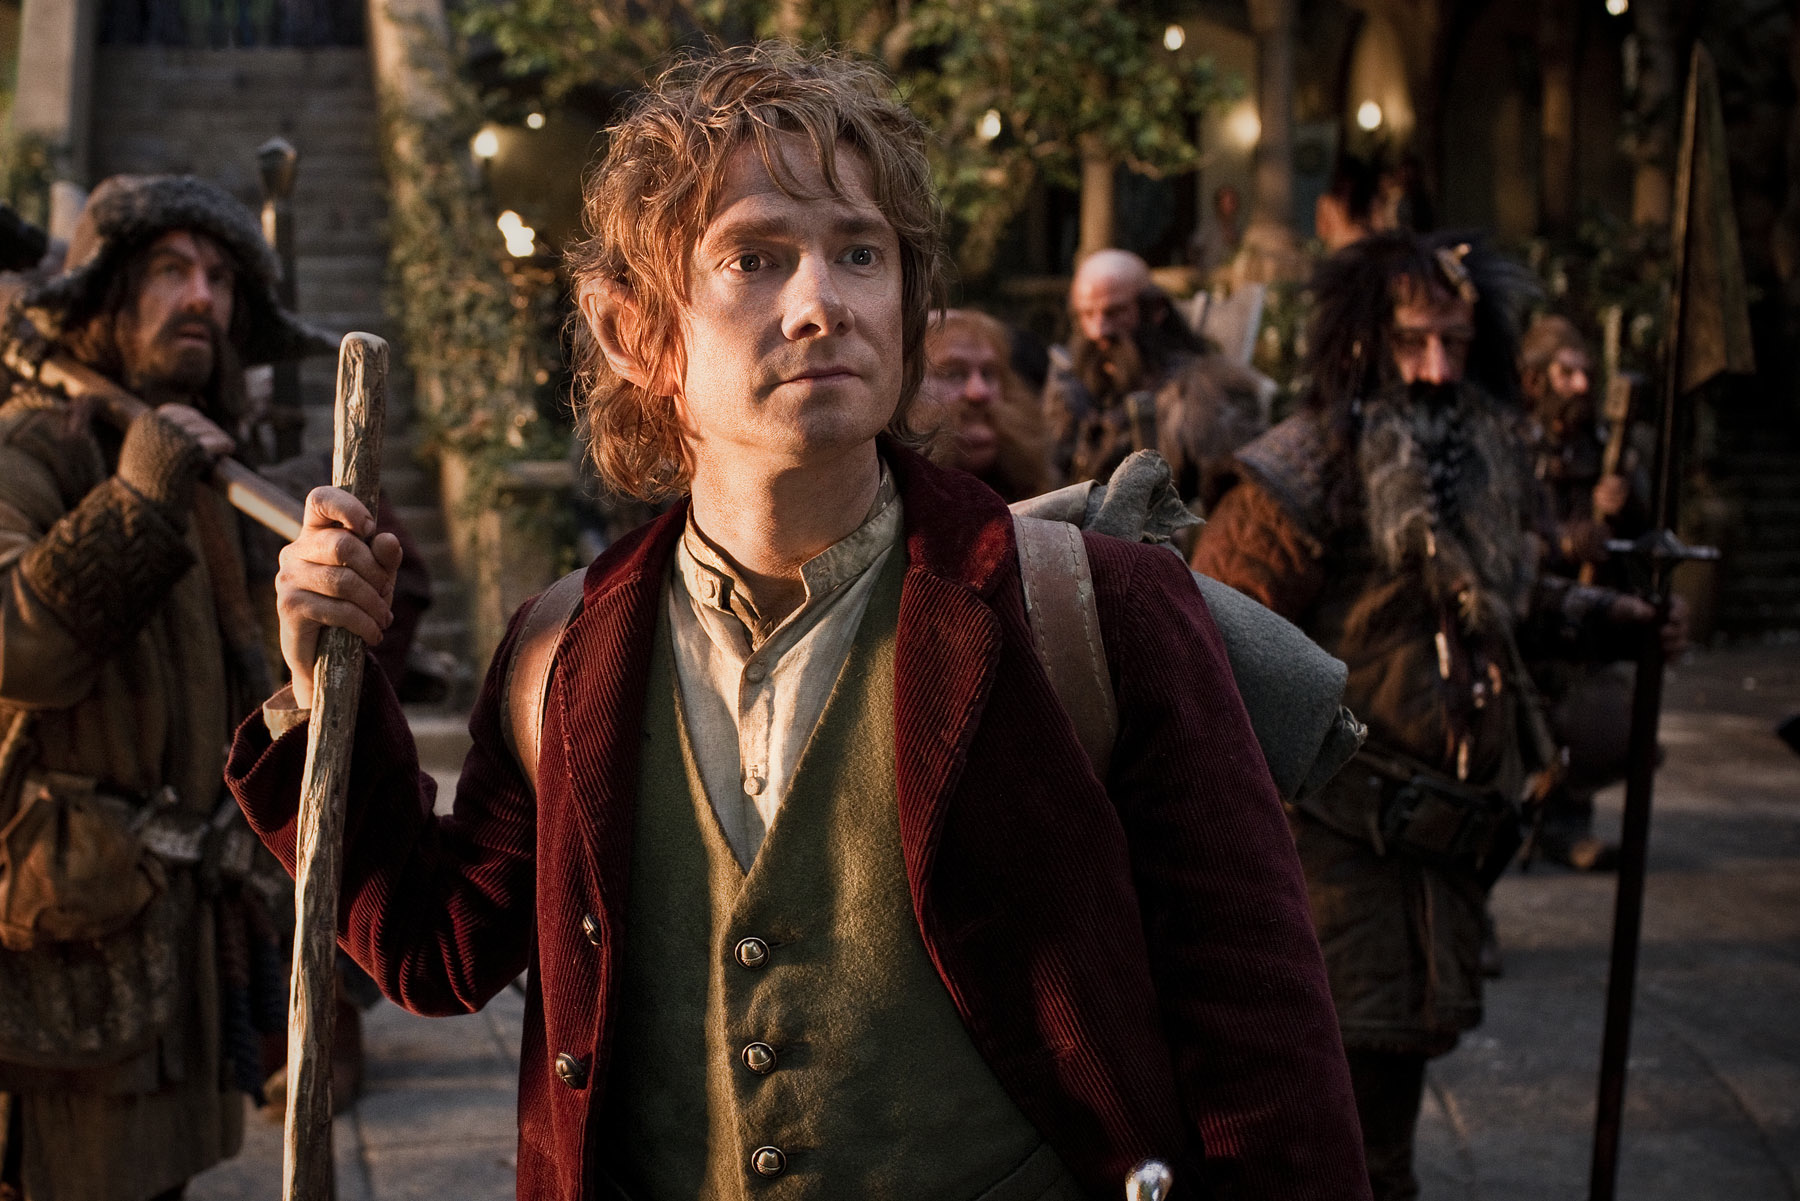 the hobbit and bilbo In particular, the hobbit is about bilbo baggins, and the trilogy suffered from an overbalance of characters, many of which are not in the book at all great job on condensing the intro old bilbo and frodo's conversations were tedious and unnecessary lotr fan-service so they were not missed.